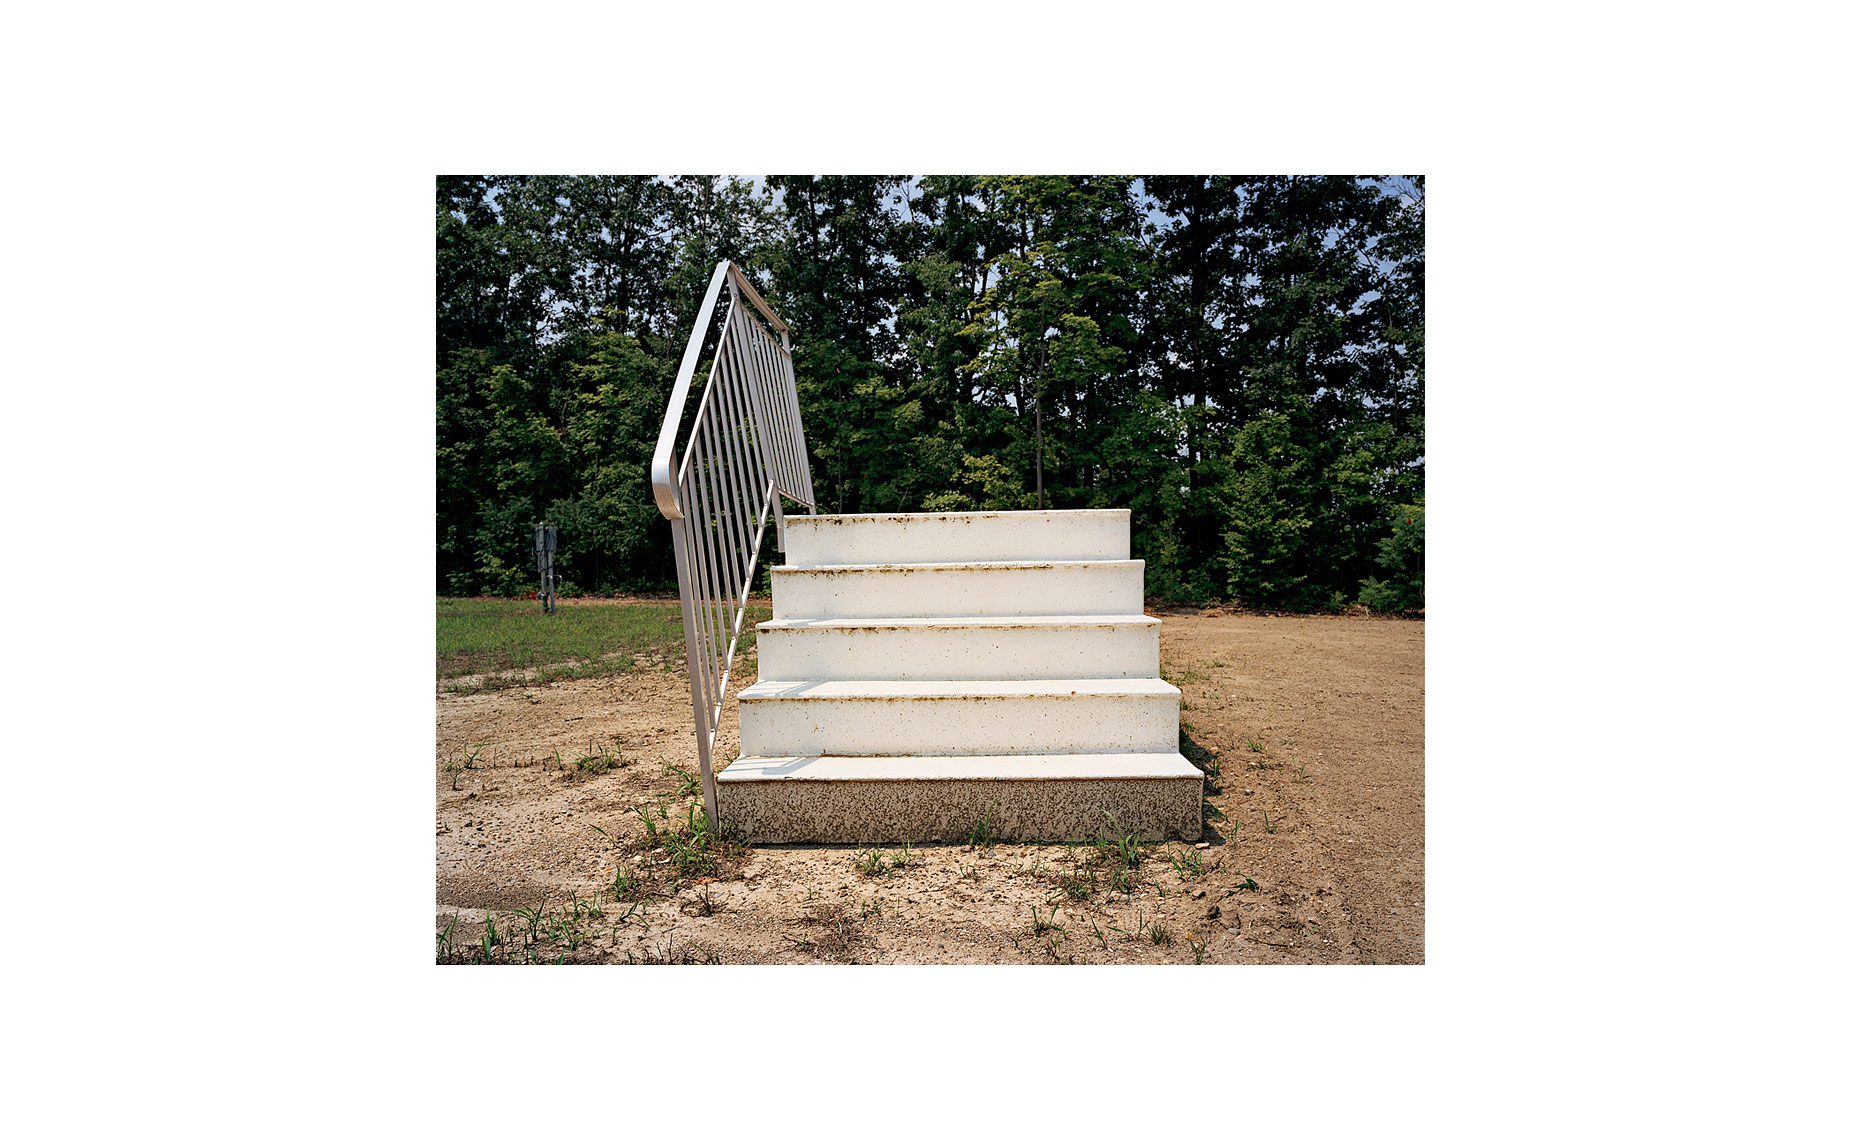 This Was What There Was | Stairway. Willis, Michigan. July 2006